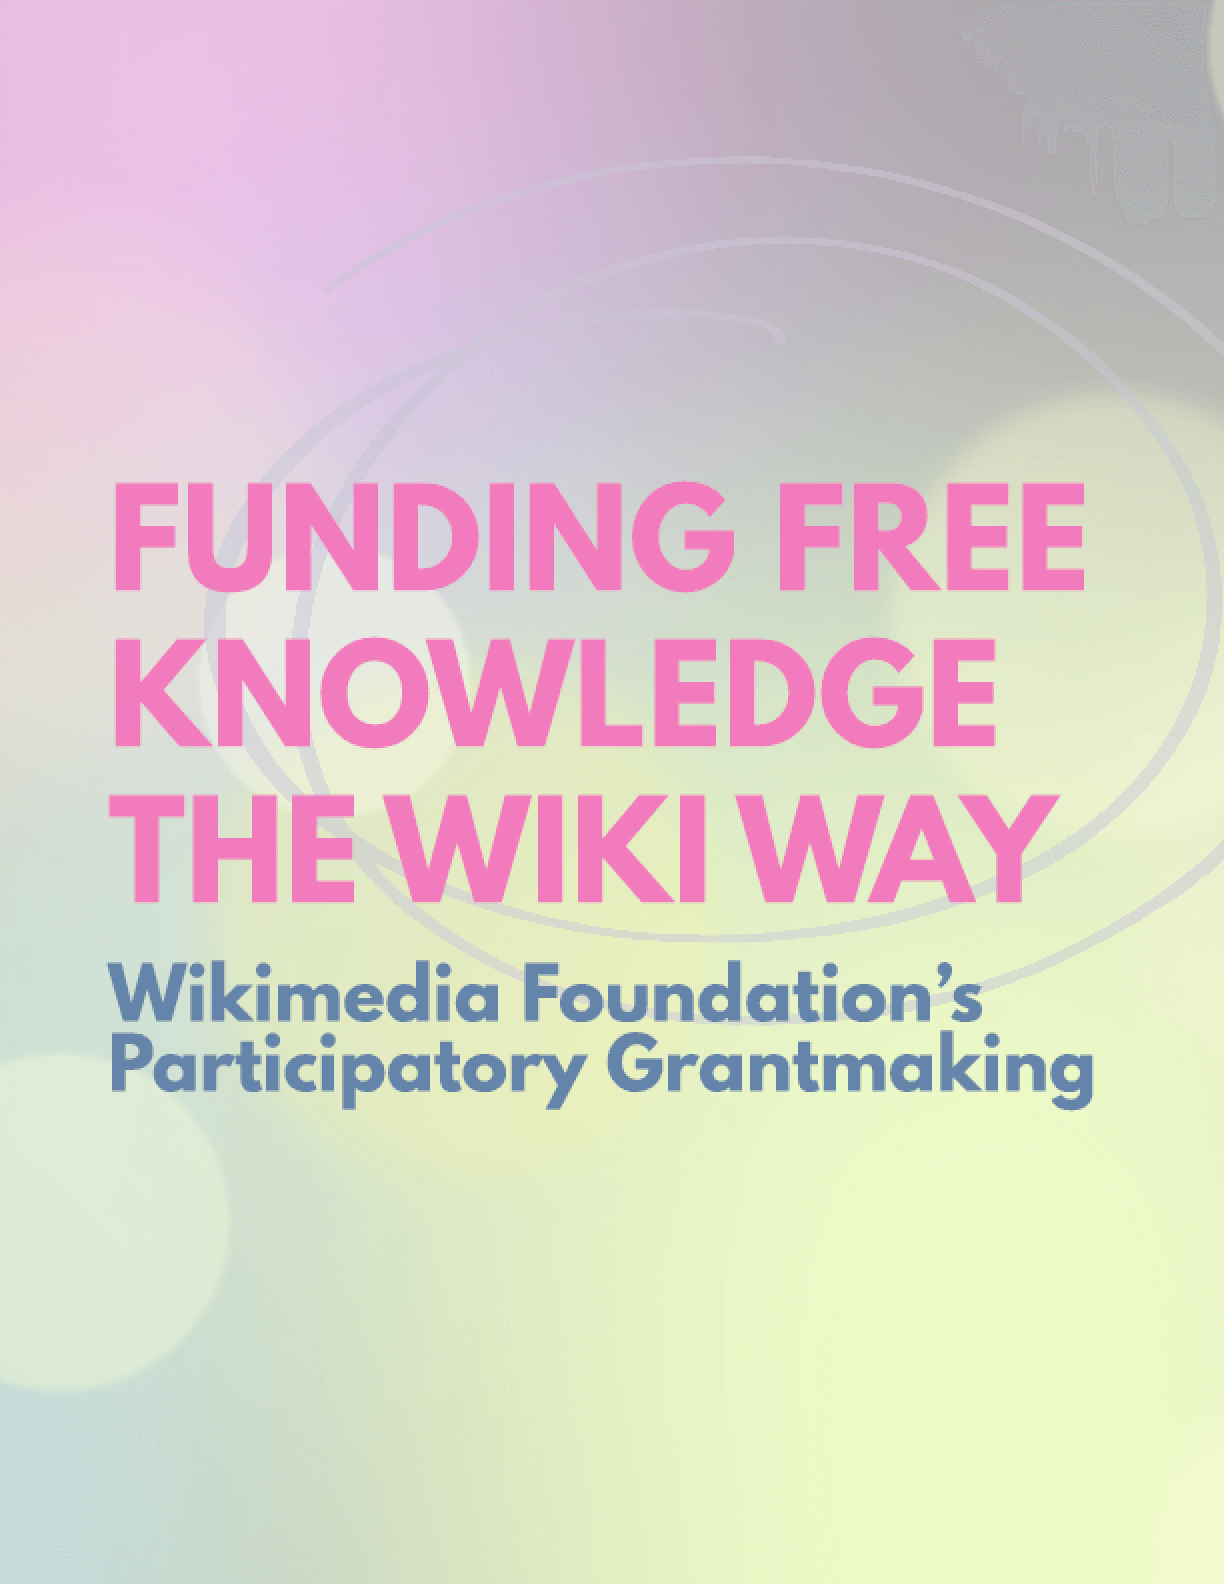 Funding Free Knowledge The Wiki Way : Wikimedia Foundation's Participatory Grantmaking